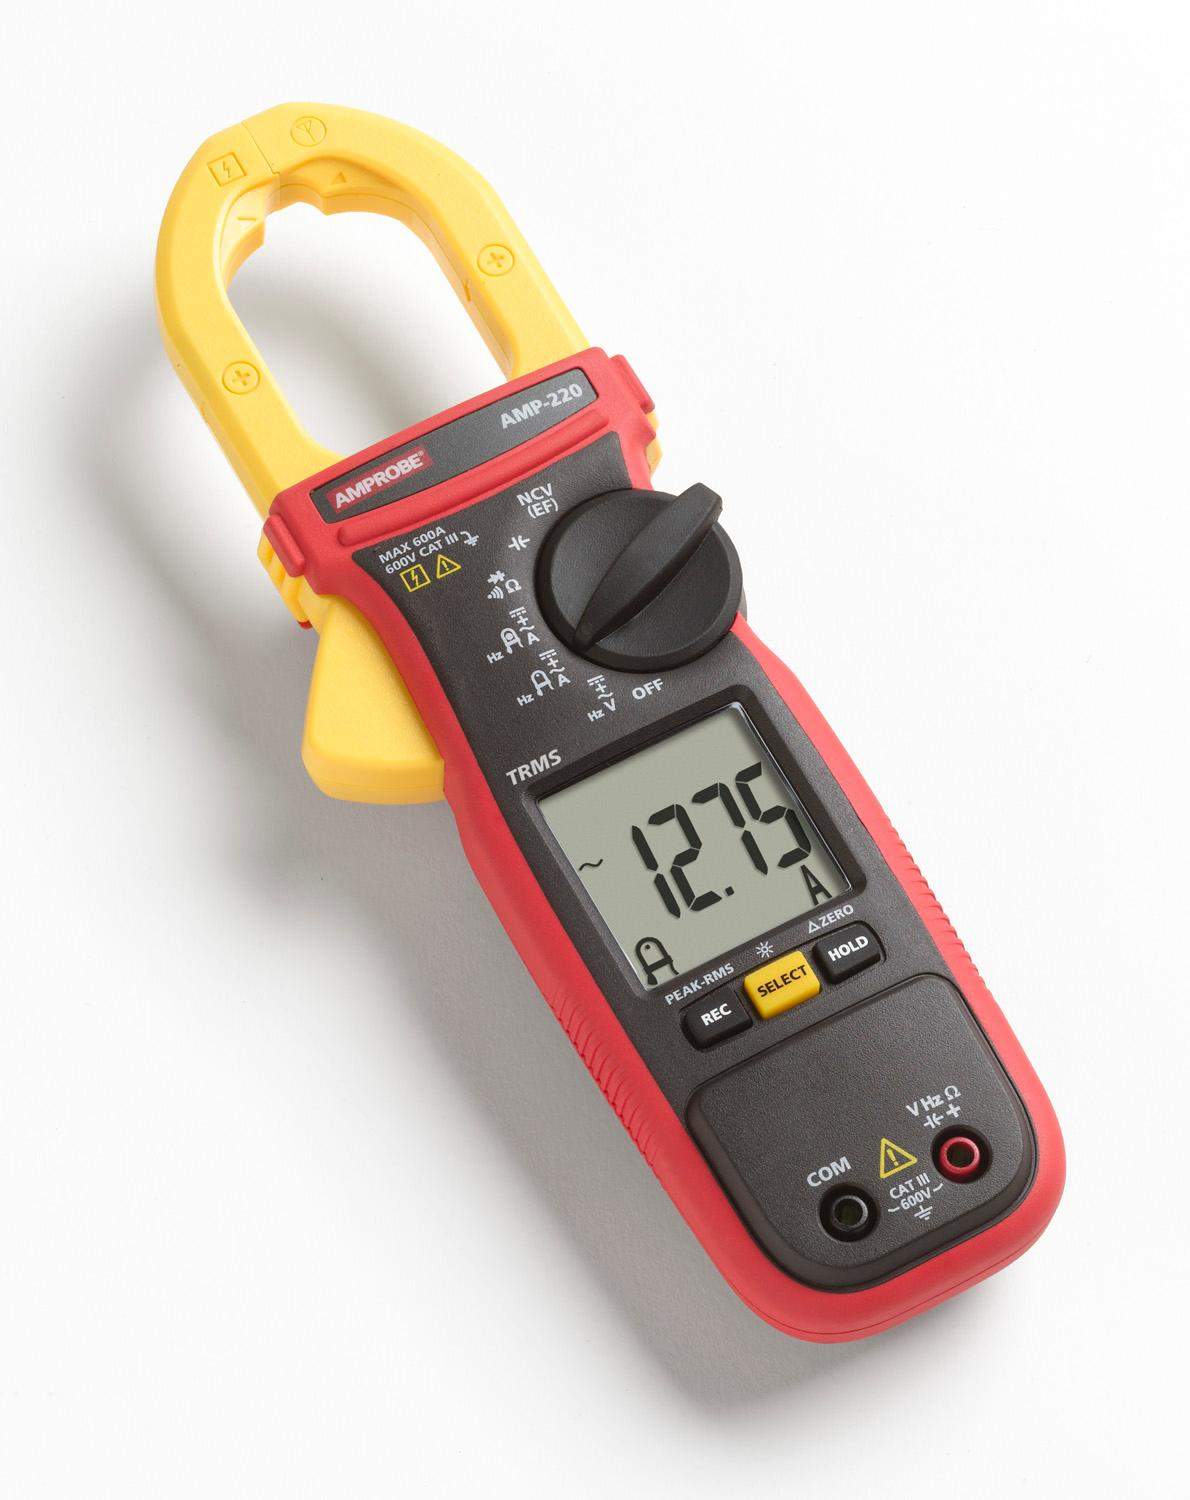 Low Amp Probe Clamp : Amp clamp meter